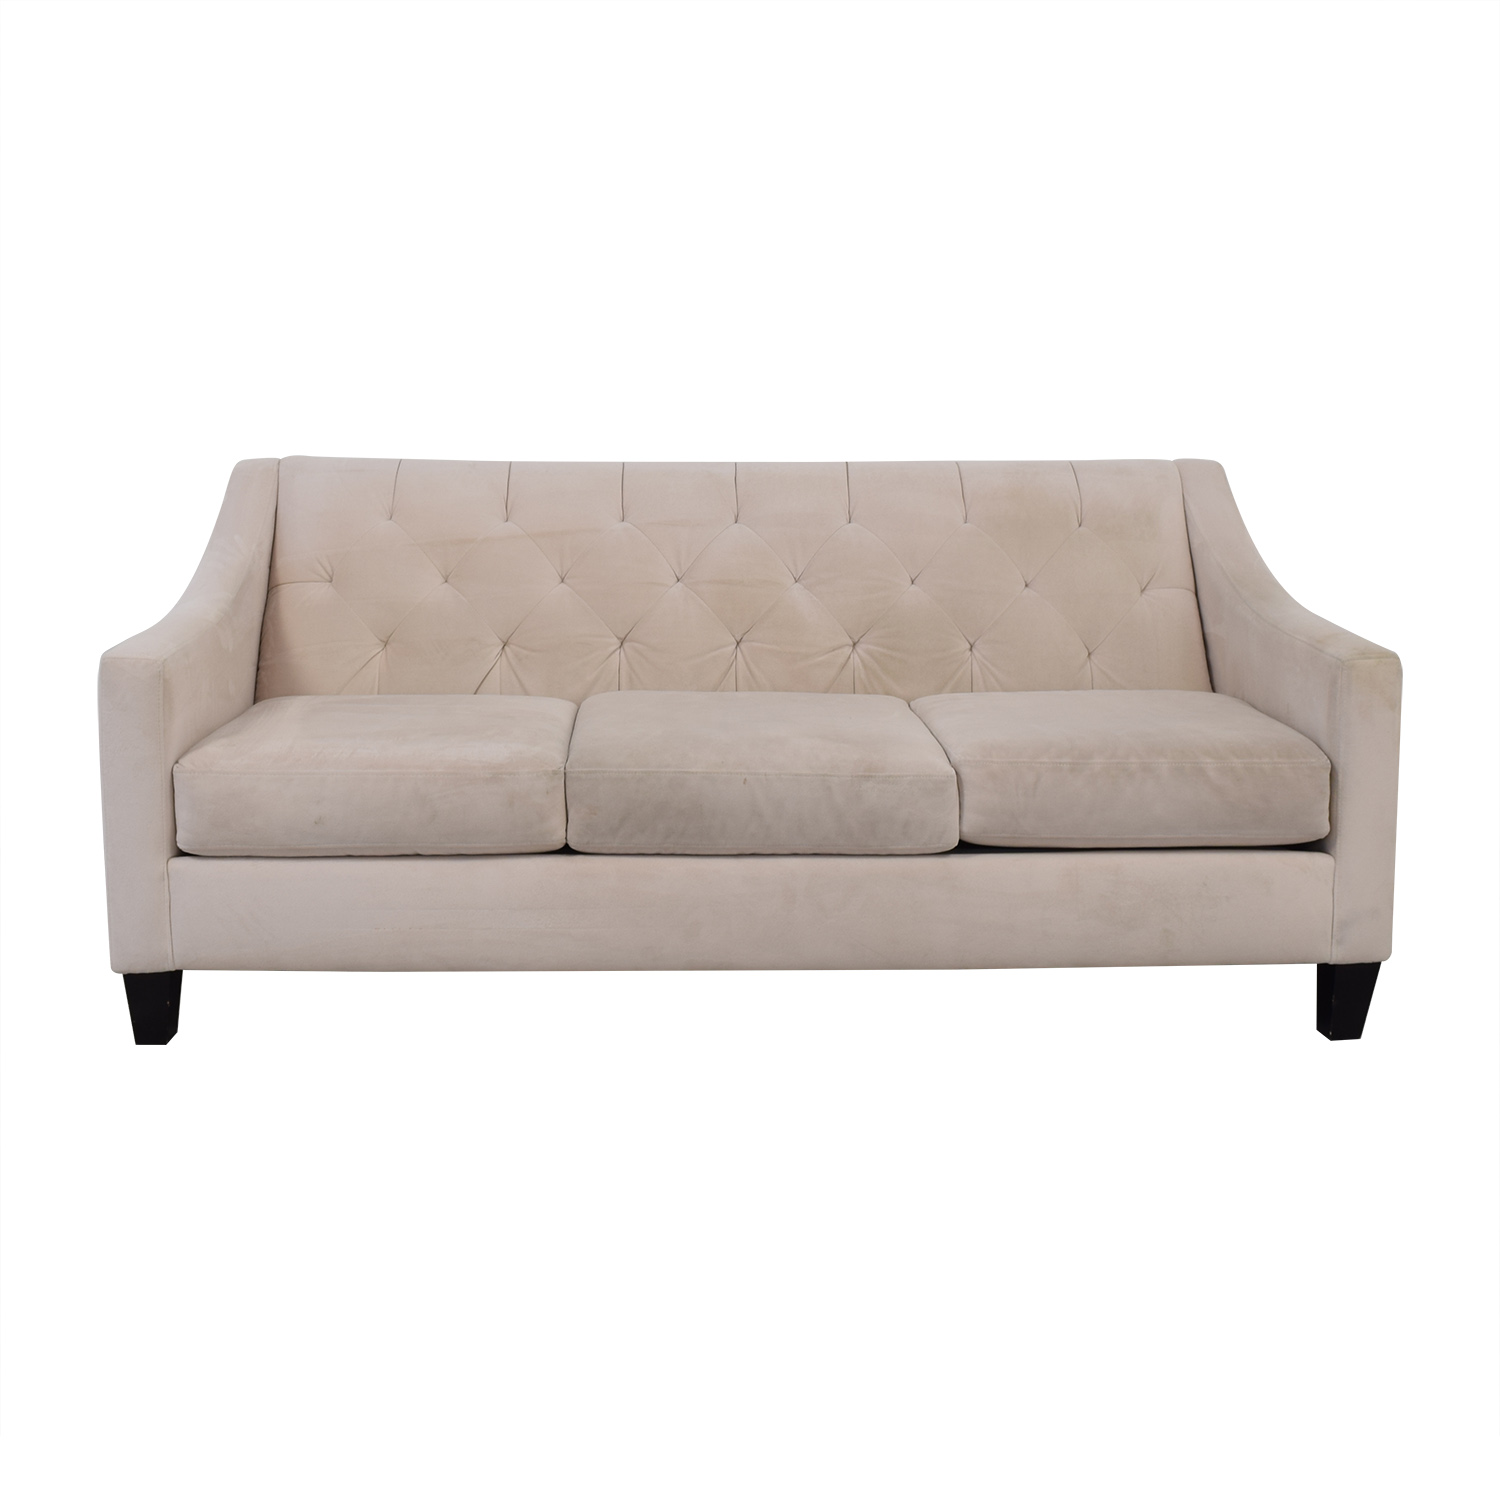 shop Max Home Three Cushion Sofa Max Home Classic Sofas